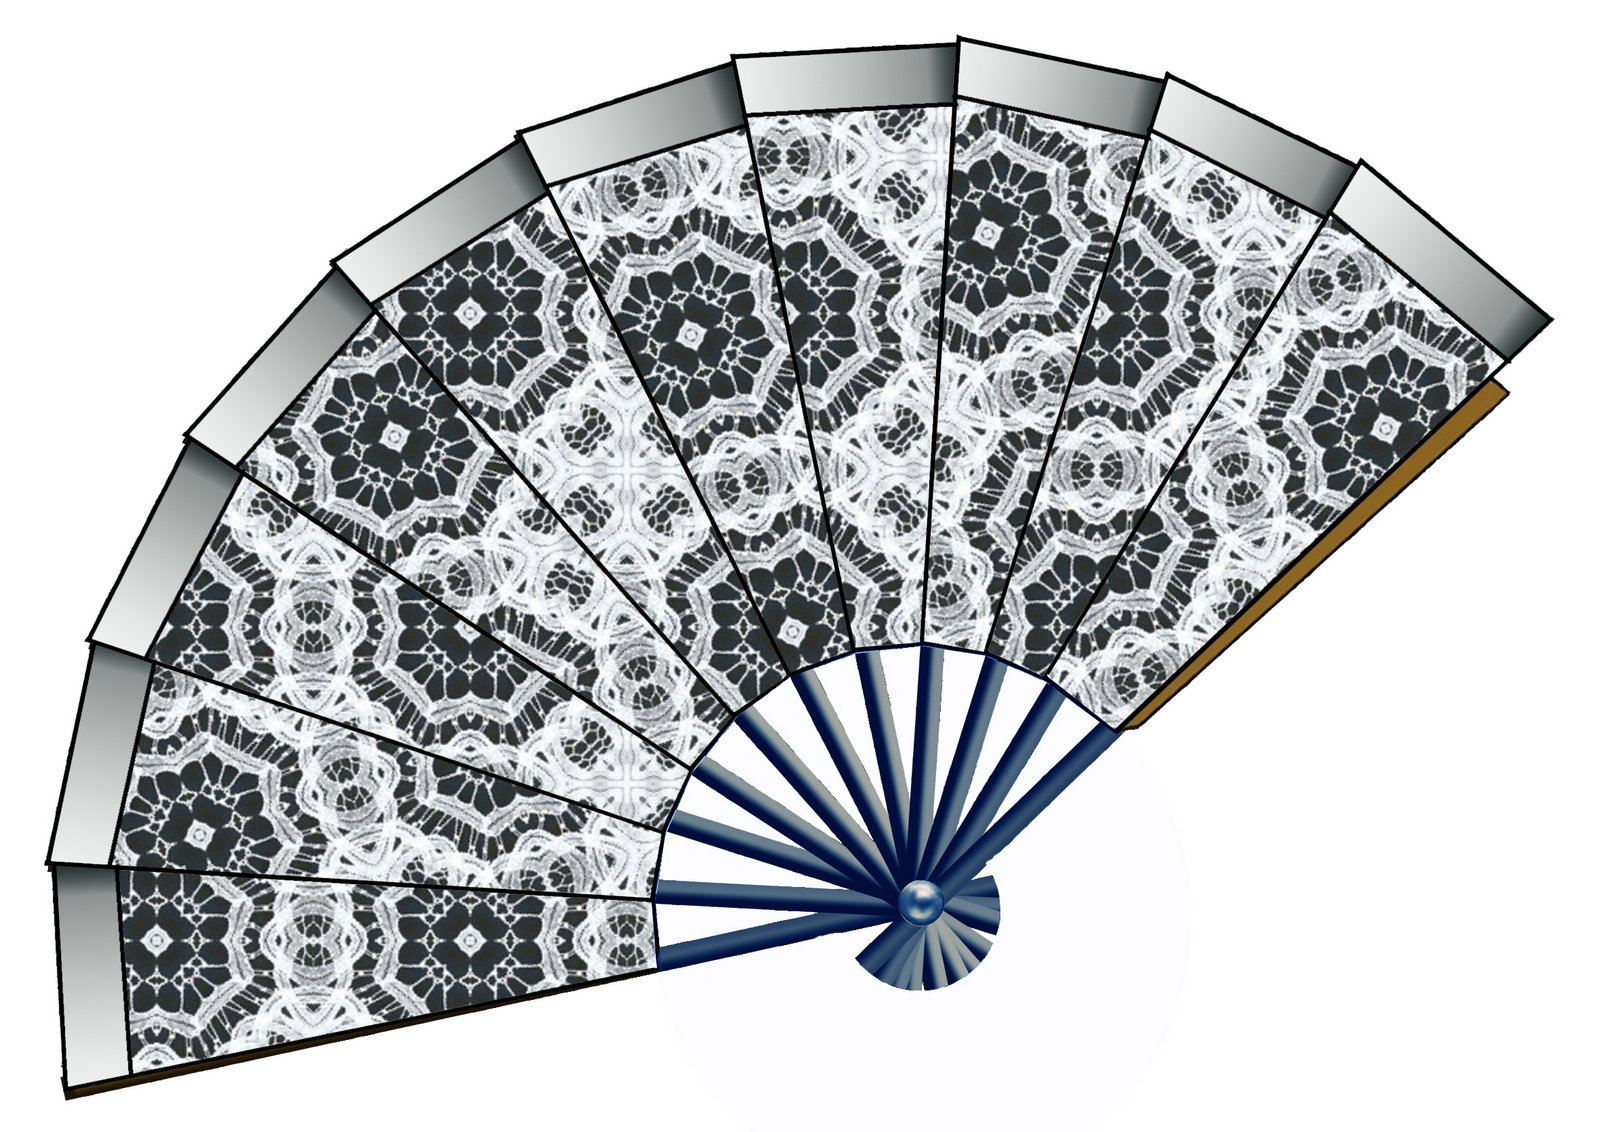 Lace clipart fan. Artbyjean paper crafts decoupage